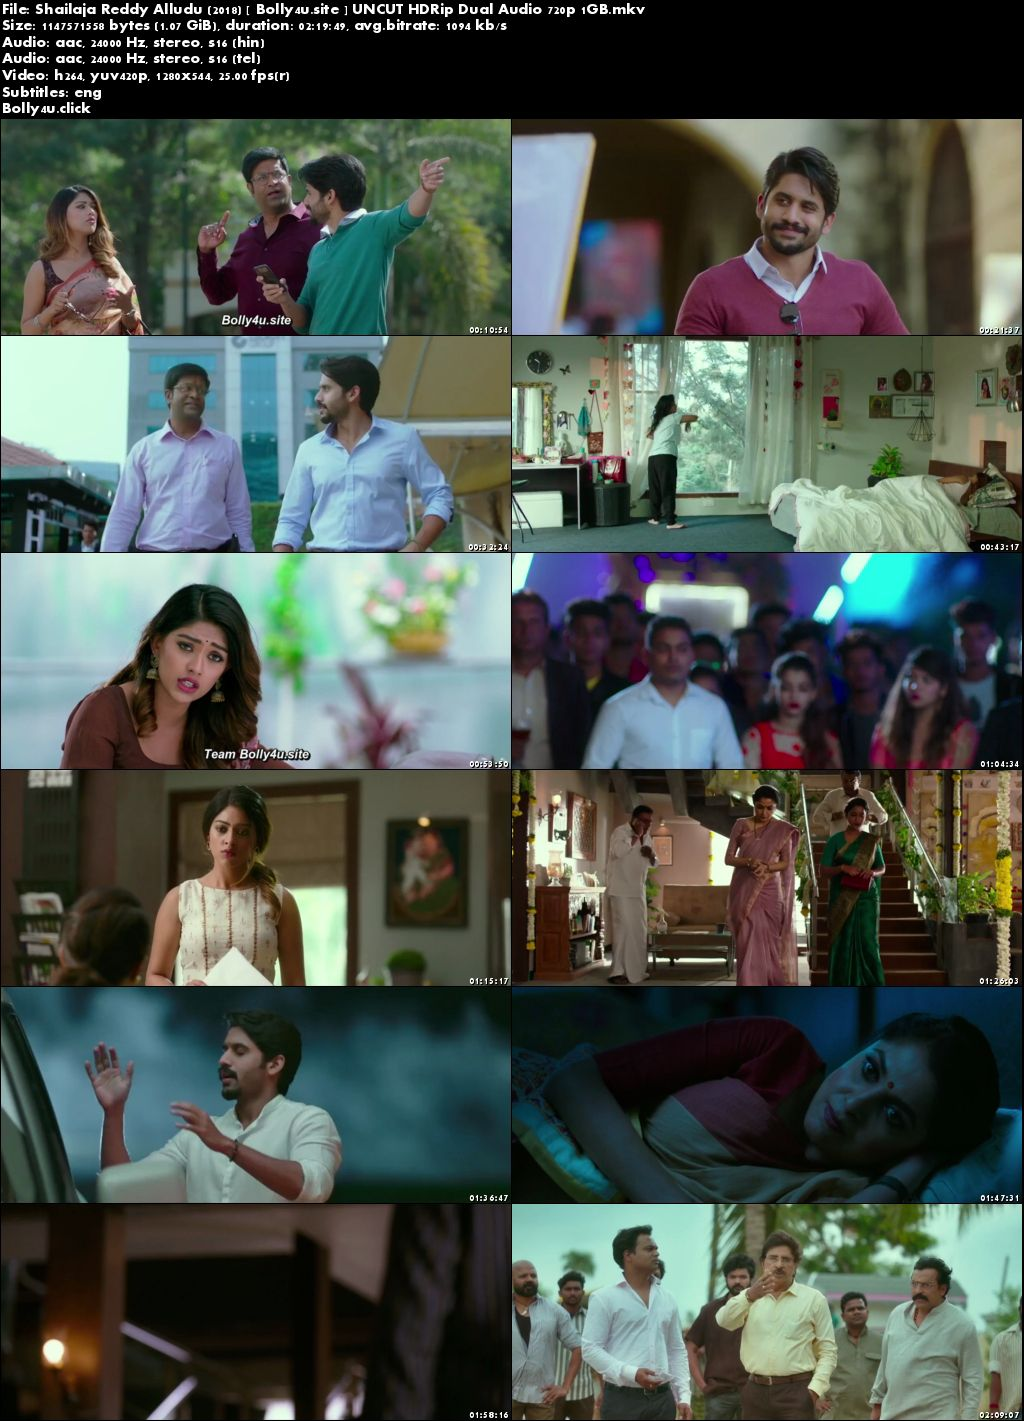 Shailaja Reddy Alludu 2018 HDRip 400MB UNCUT Hindi Dual Audio 480p Download